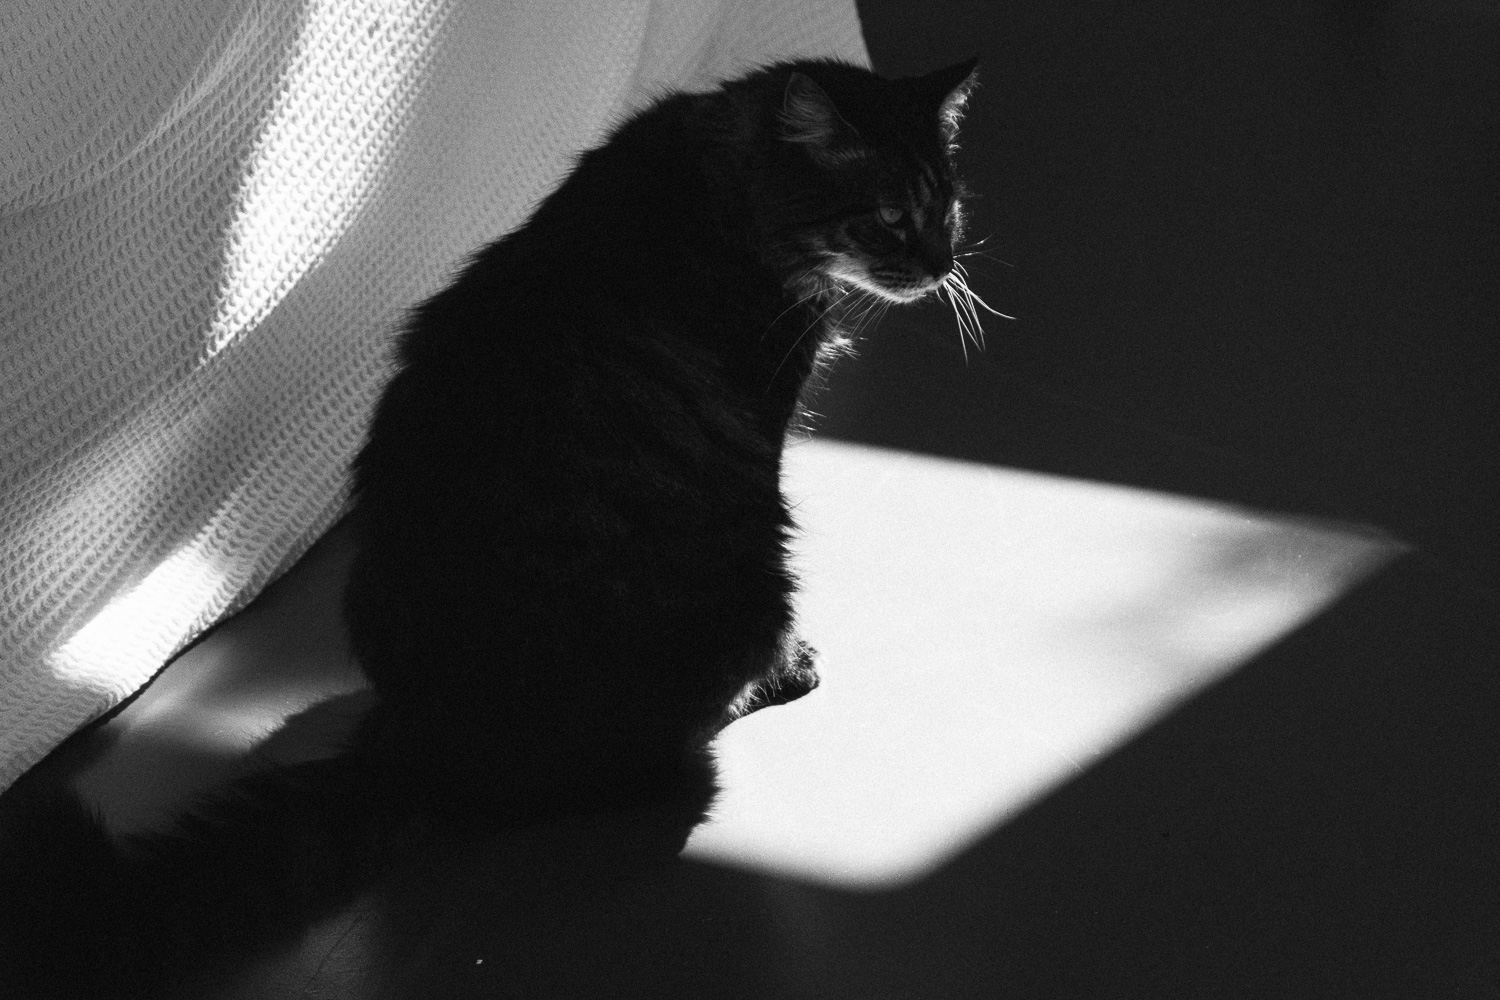 our cat milo, sitting in a patch of sunlight. (c) leonie wise